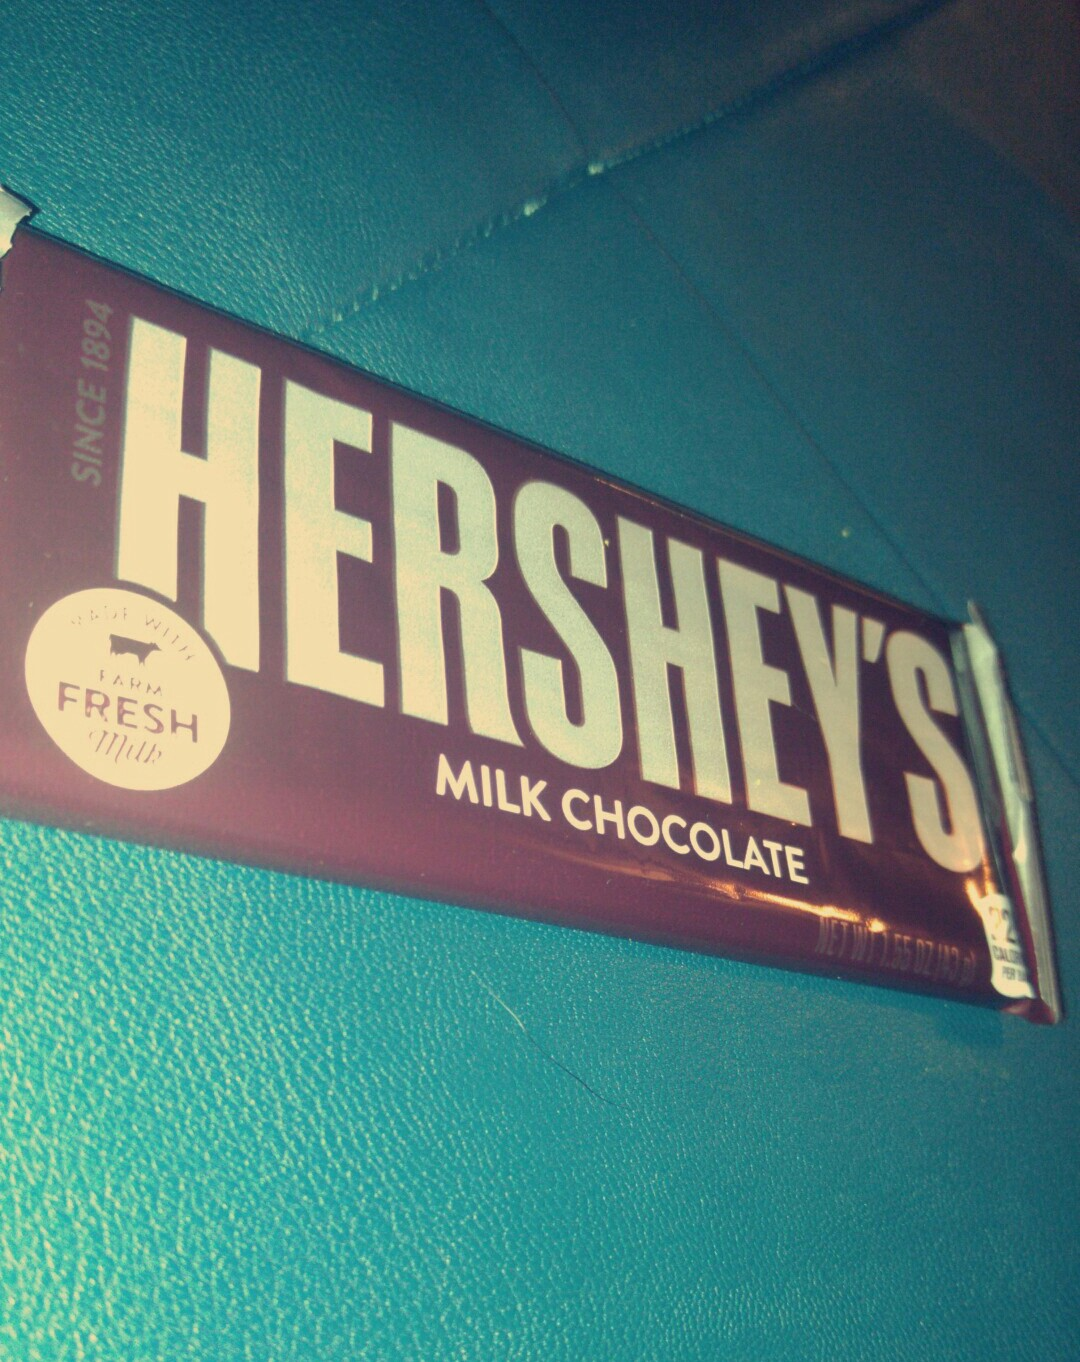 HERSHEY MOST COMMONLY KNOWN FOR ITS CHOCOLATE- Most people recognize Hershey for its undeniable good chocolate bars, unfortunately for them sugar is not as attractive nowadays.